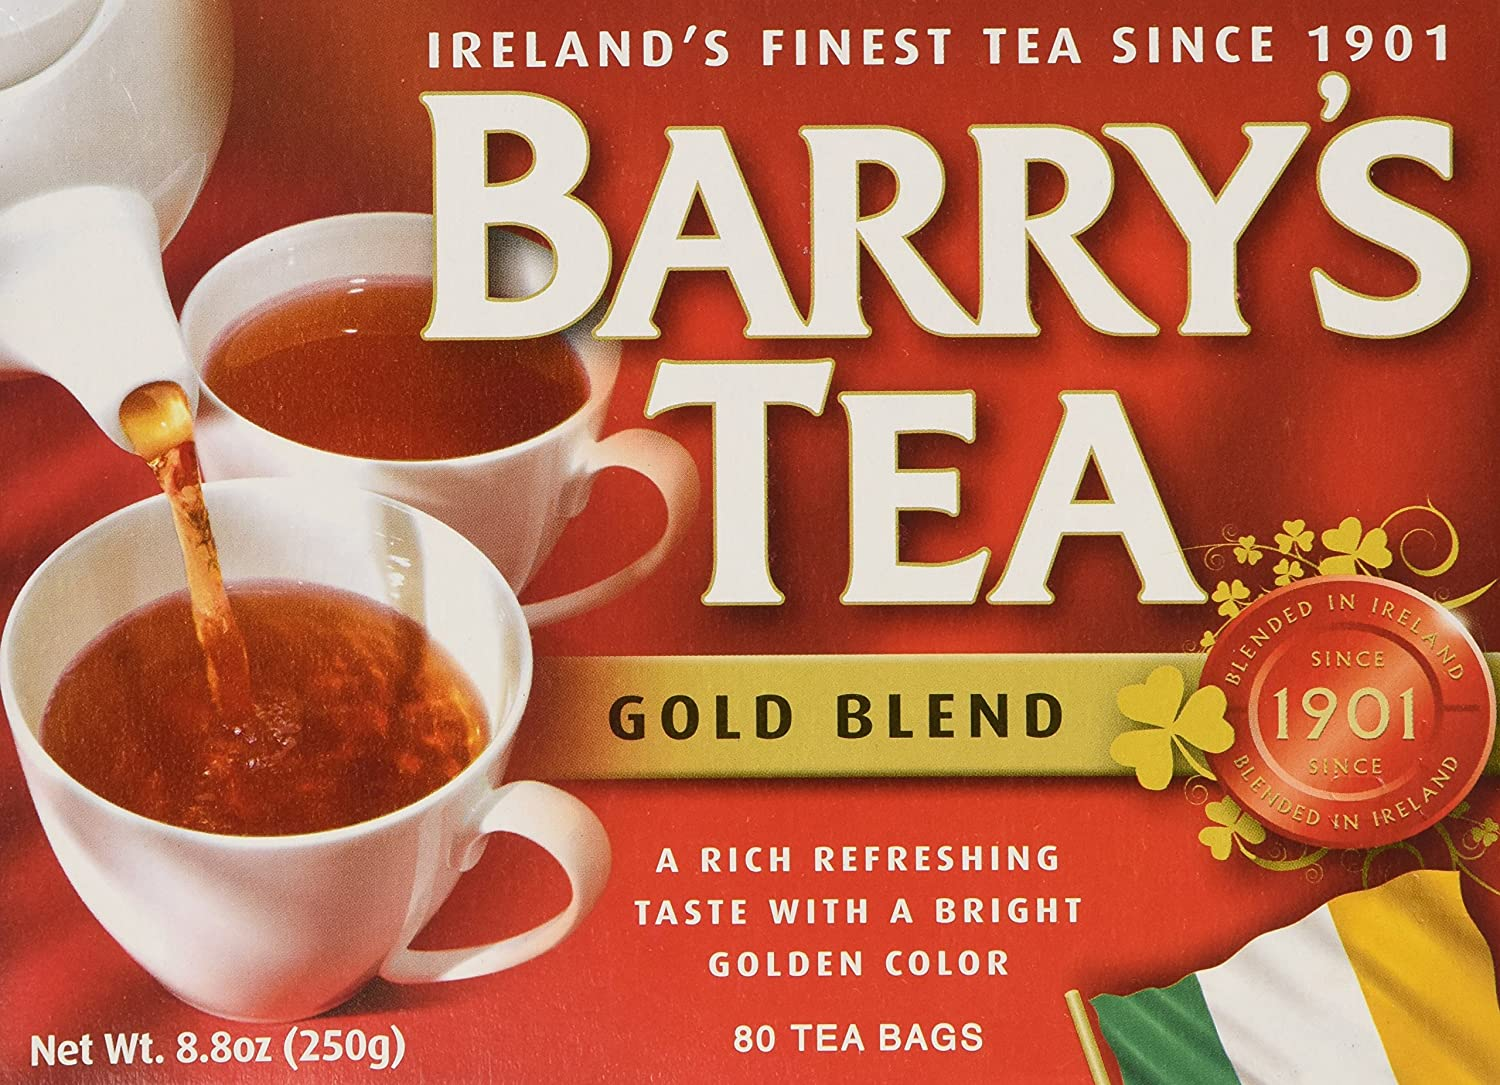 Barrys Irish Breakfast Tea 80's ( Pack of 2)